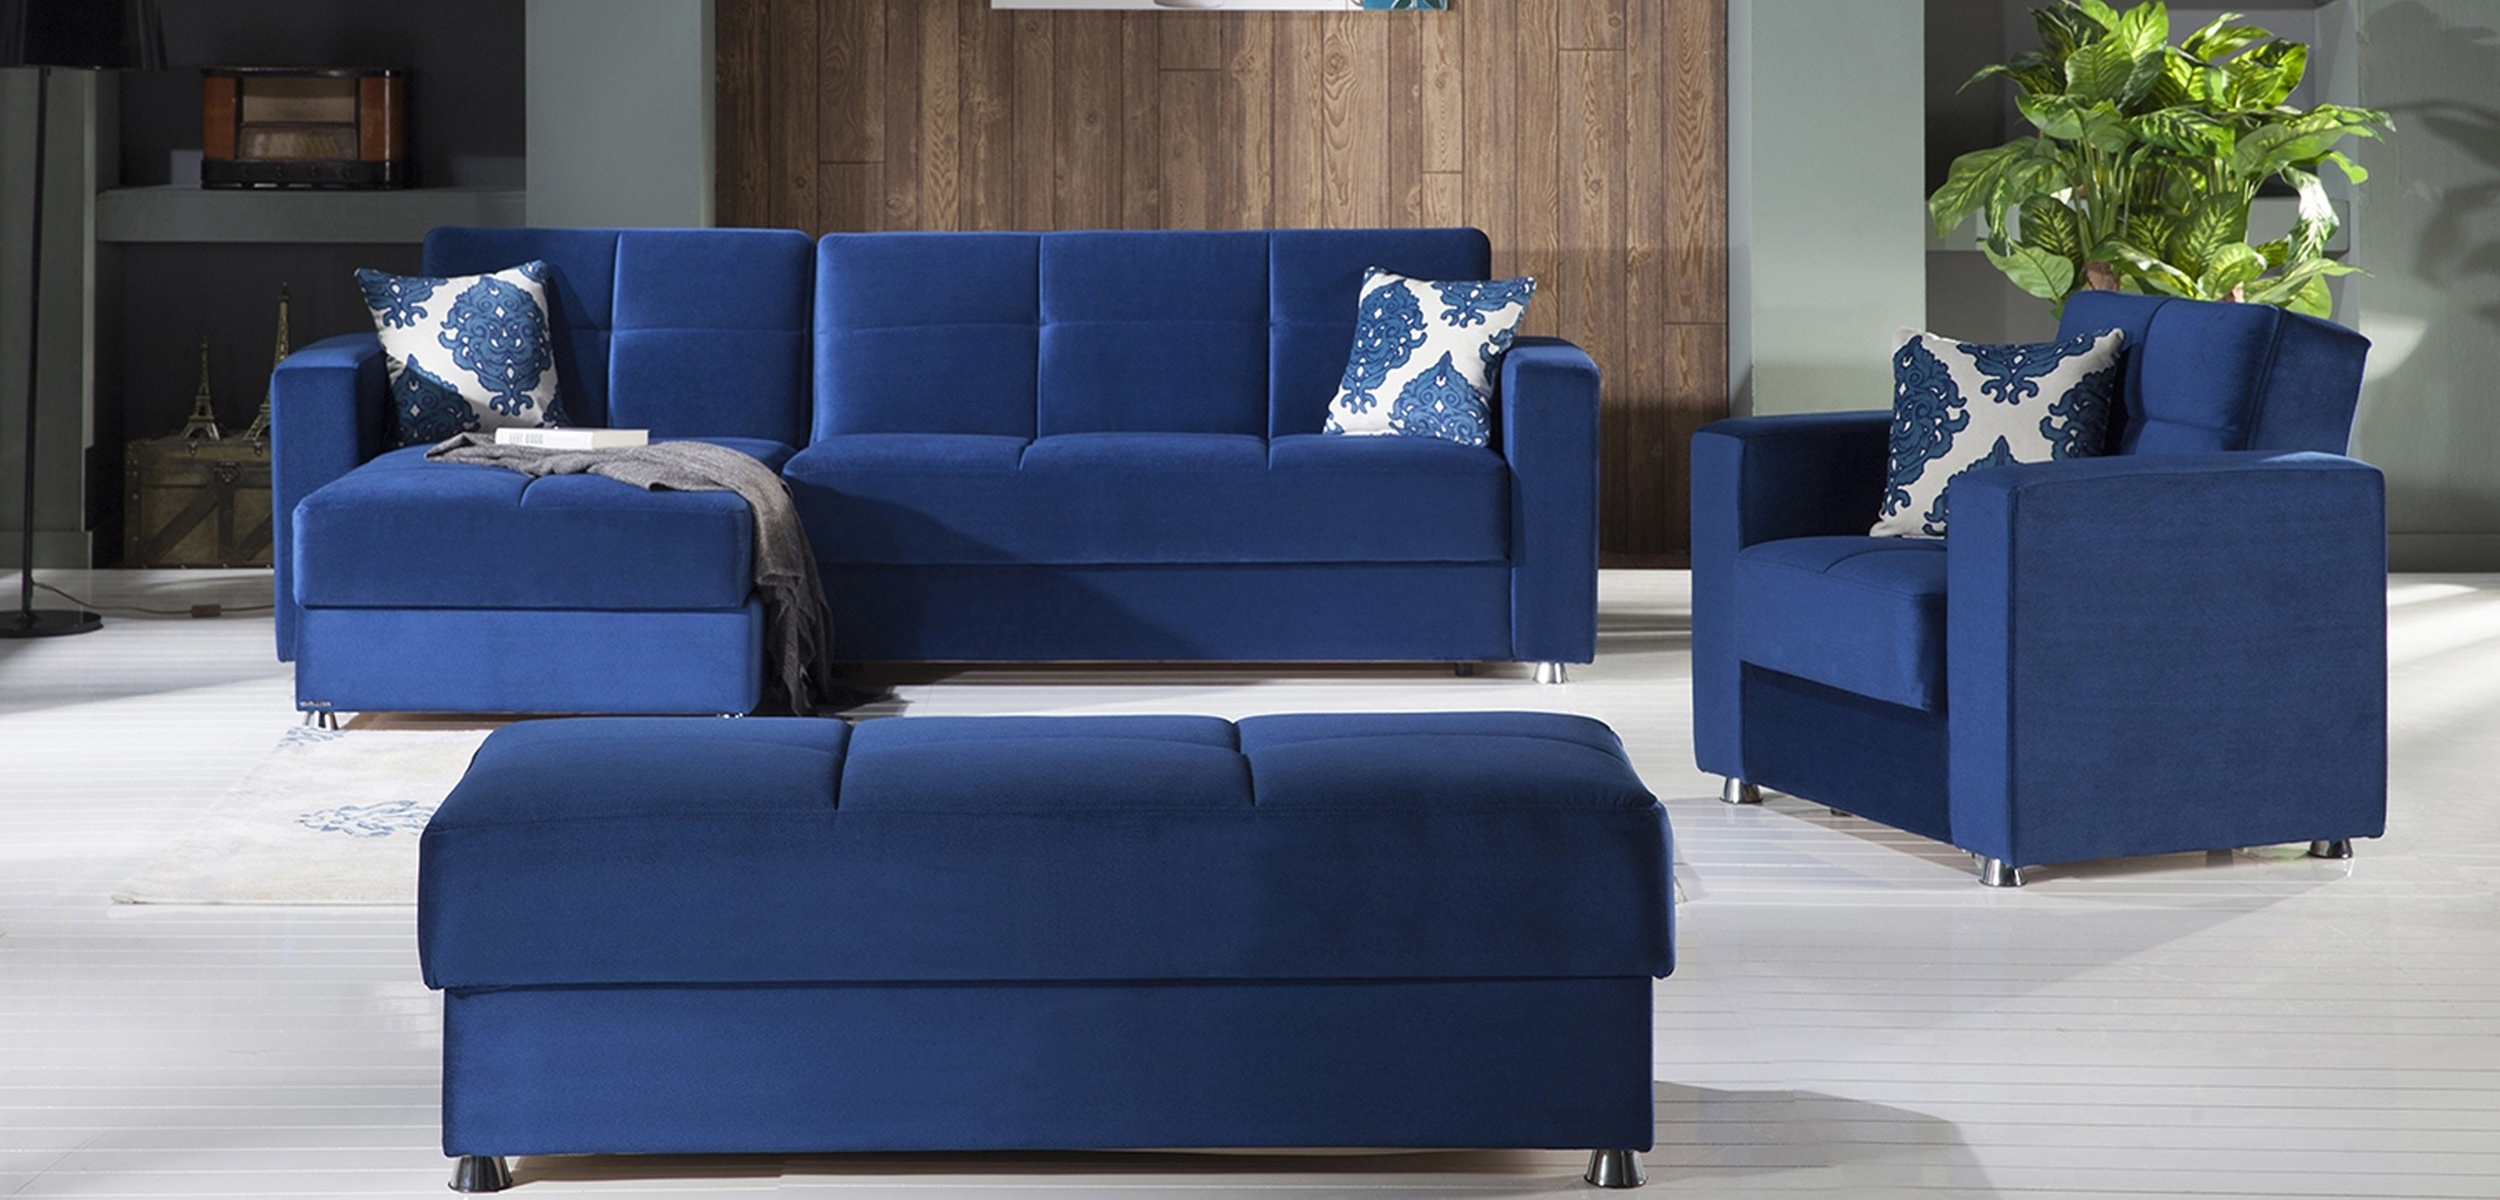 Most Recently Released Elegant Convertible Sectional Sofa In Roma Navy Plainistikbal Intended For Convertible Sectional Sofas (View 8 of 15)